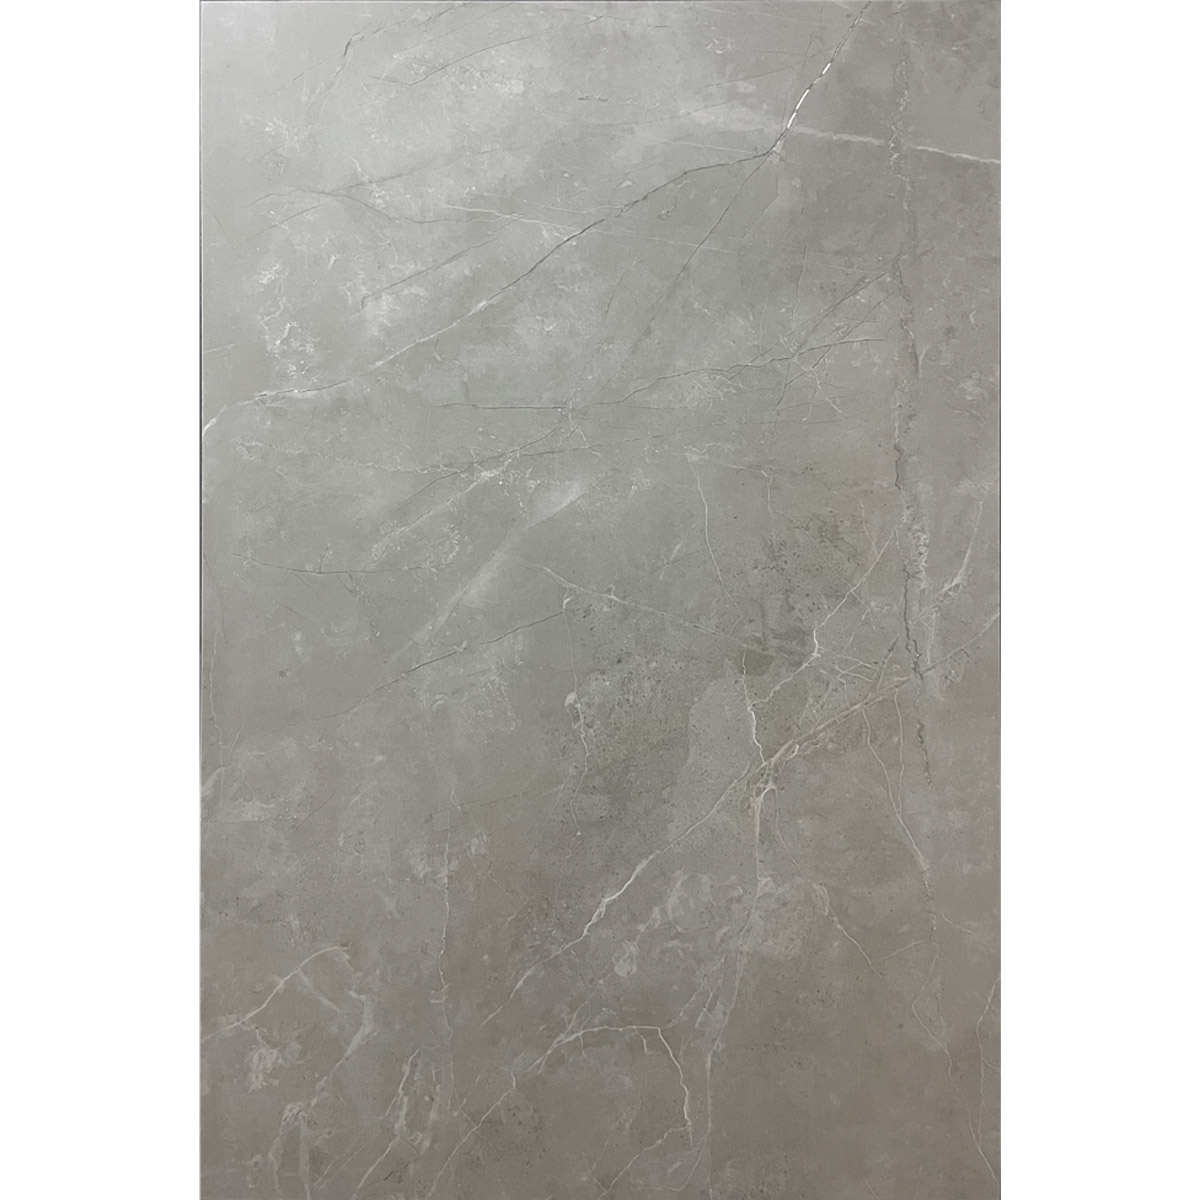 BUCKINGHAM 24X36 GREY MARBLE HONED P1